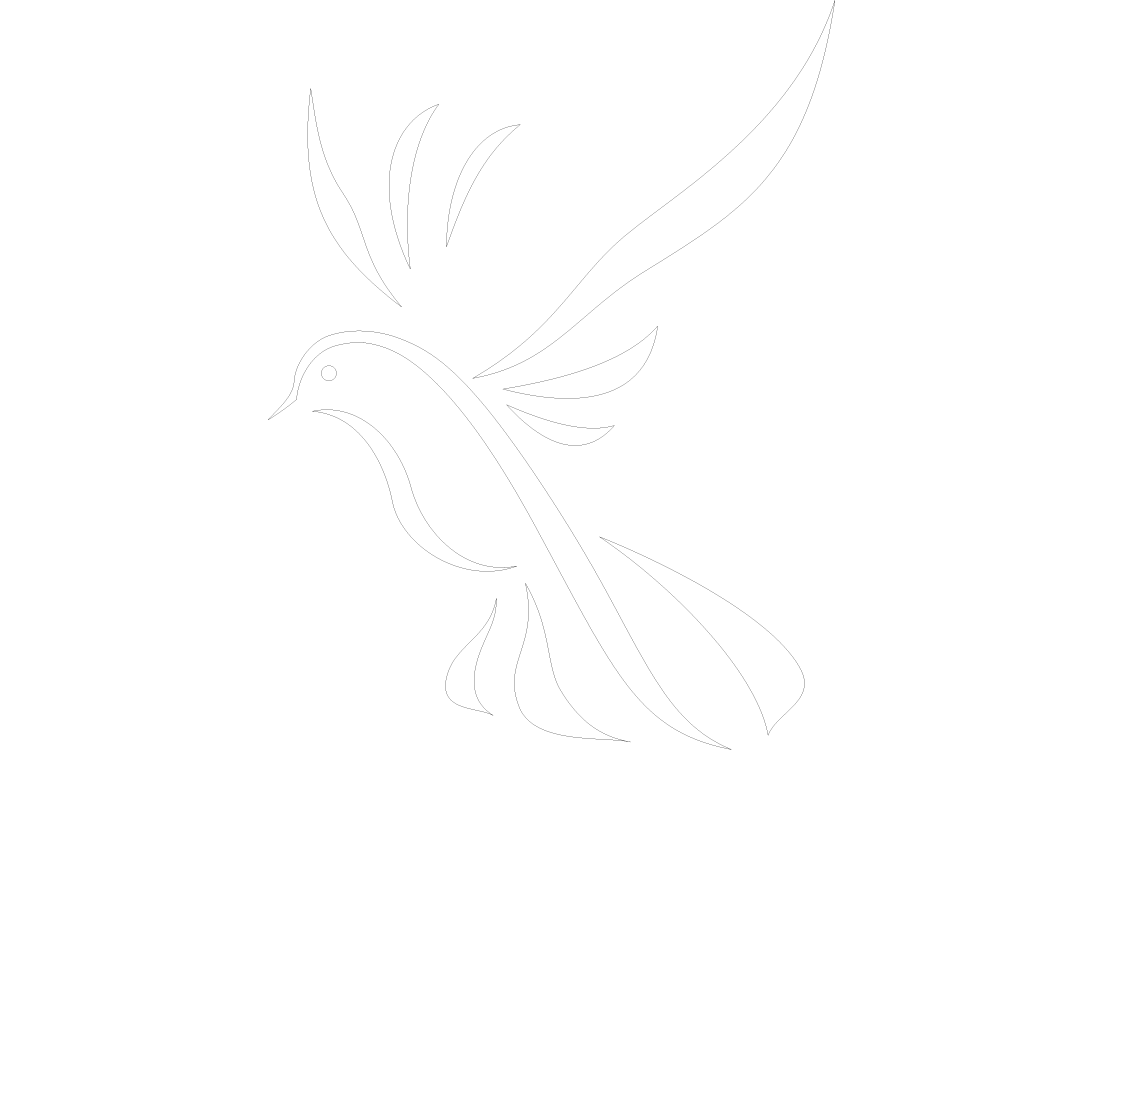 Dovetail Scotland – bespoke woodwork and more